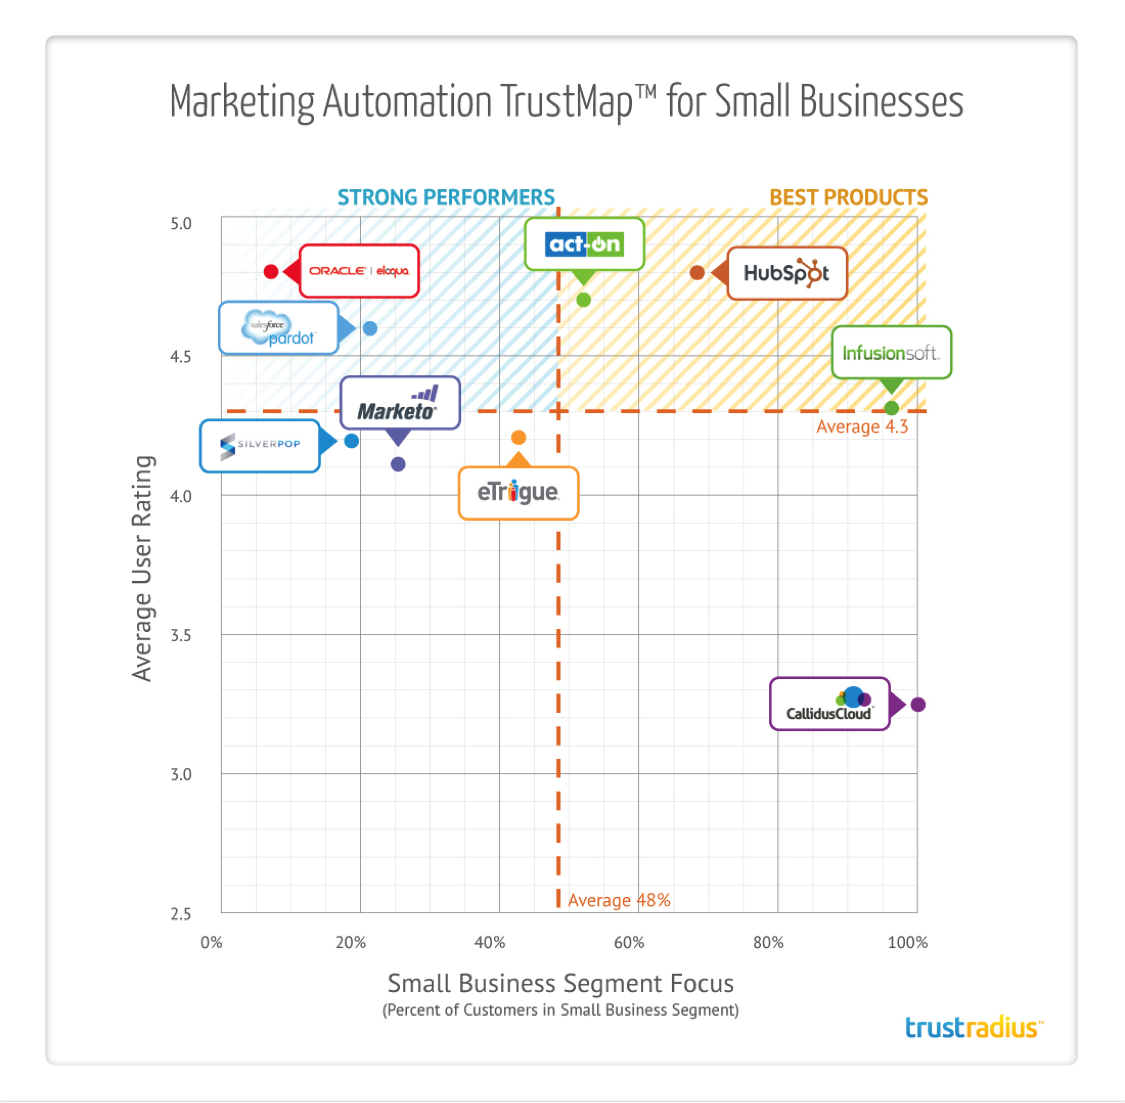 Marketing Automation TrustMap for Small Businesses